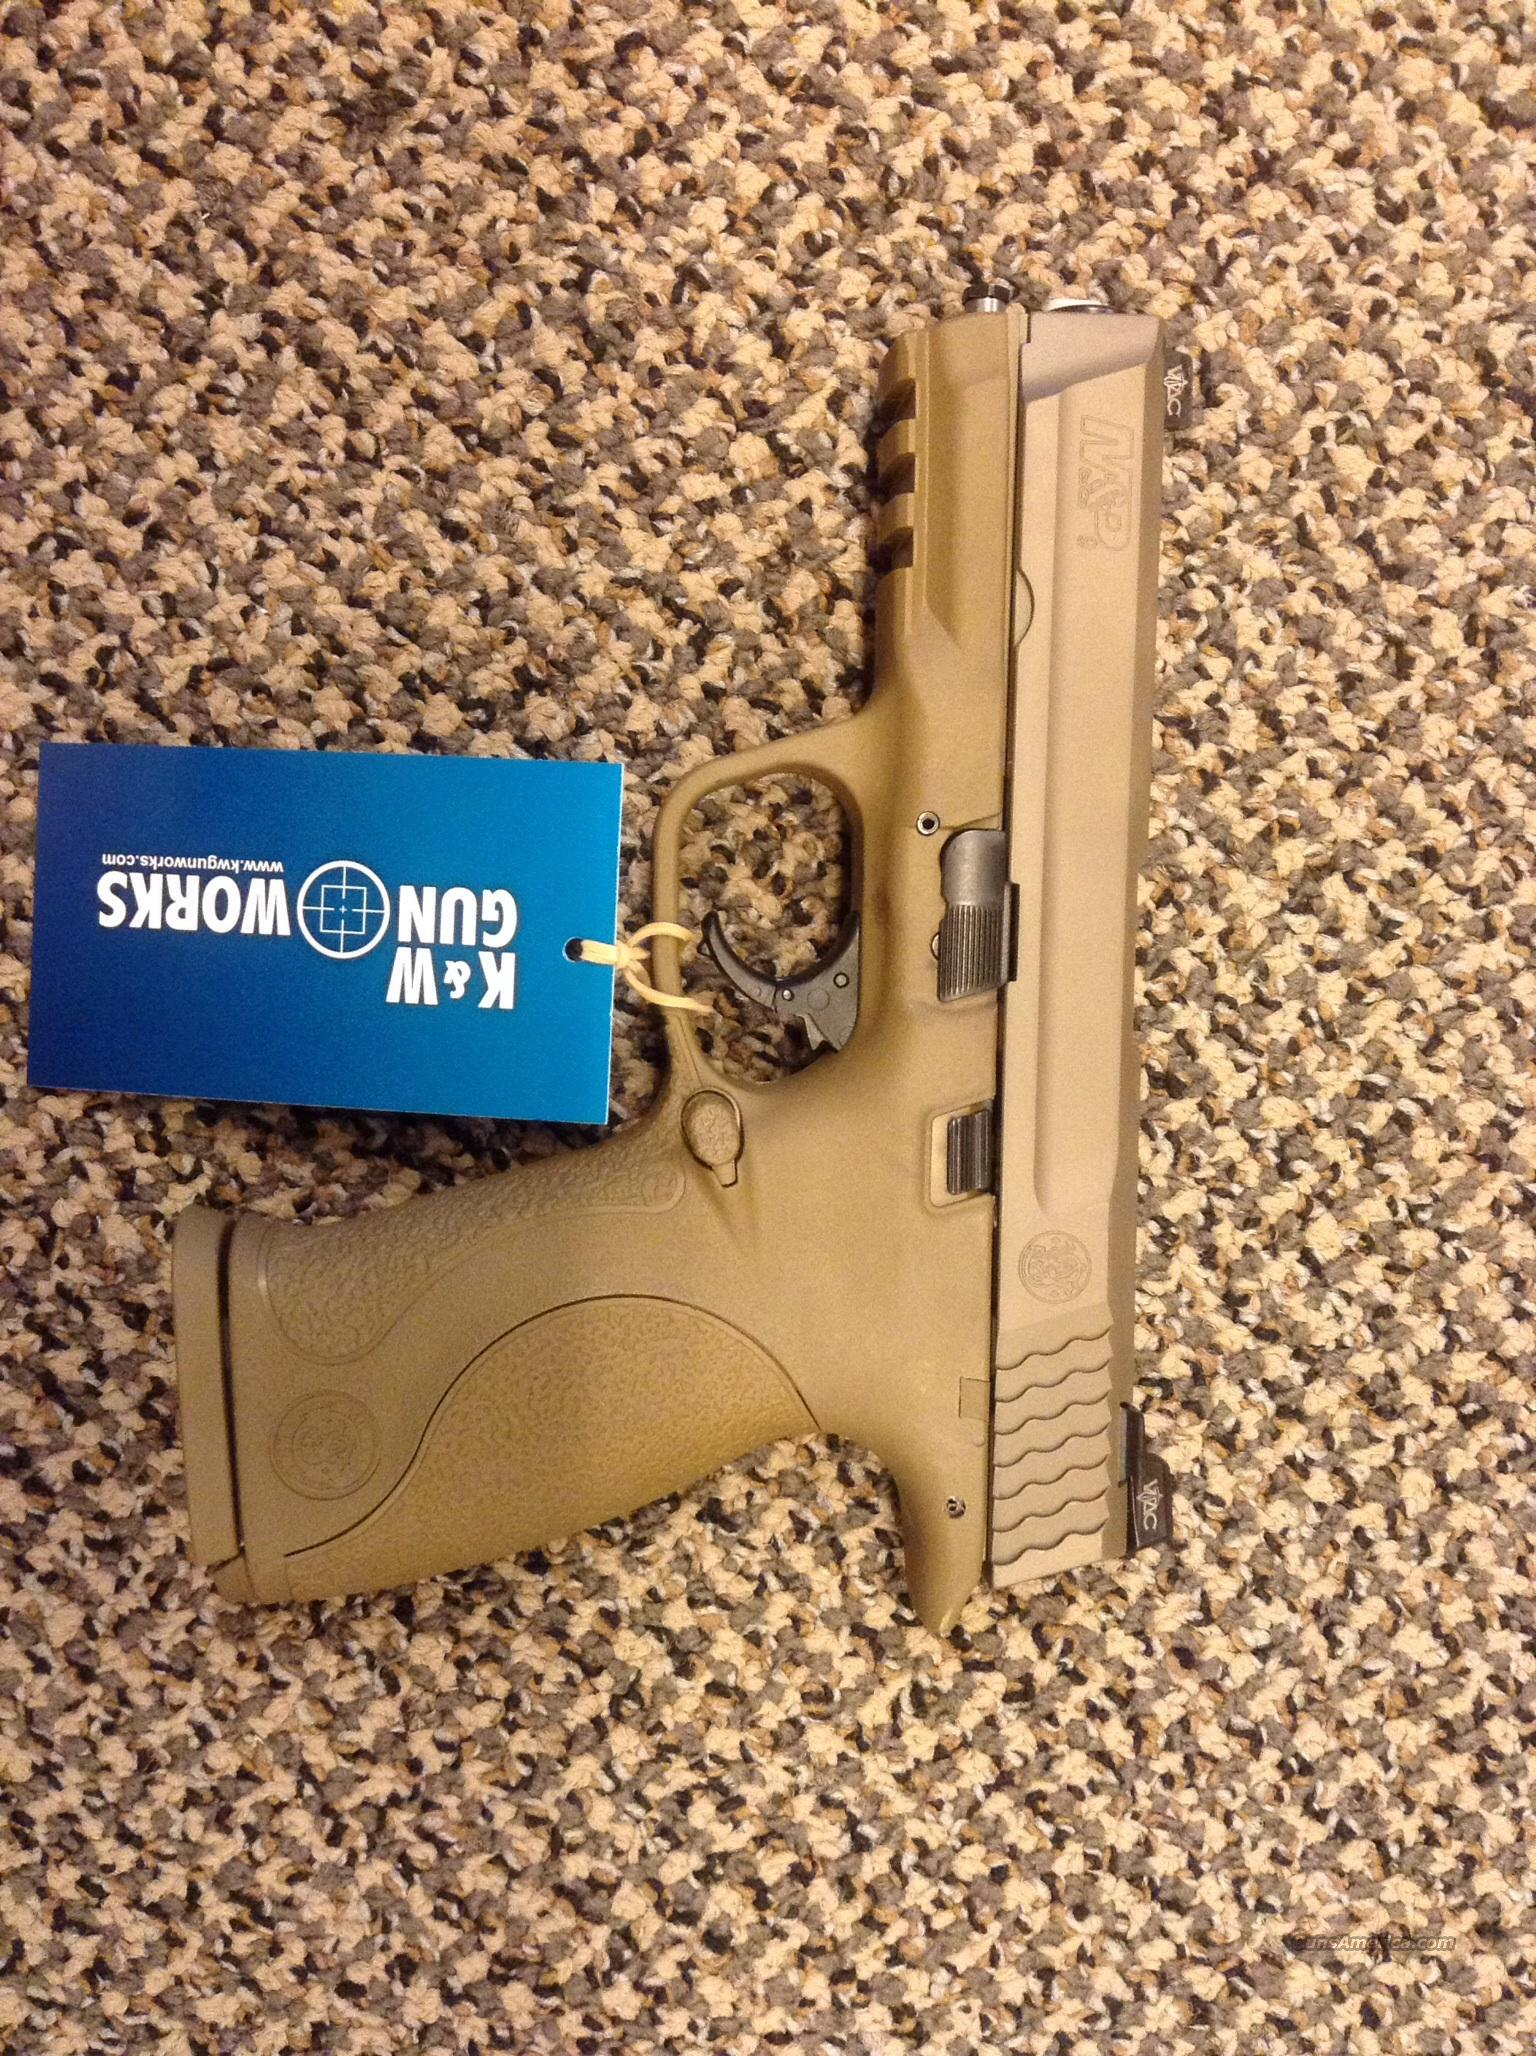 S&W M&P VTAC IN 9MM FLAT DARK EARTH VTAC WARRIOR FRONT AND REAR NIGHT SIGHTS NIB  Guns > Pistols > Smith & Wesson Pistols - Autos > Polymer Frame